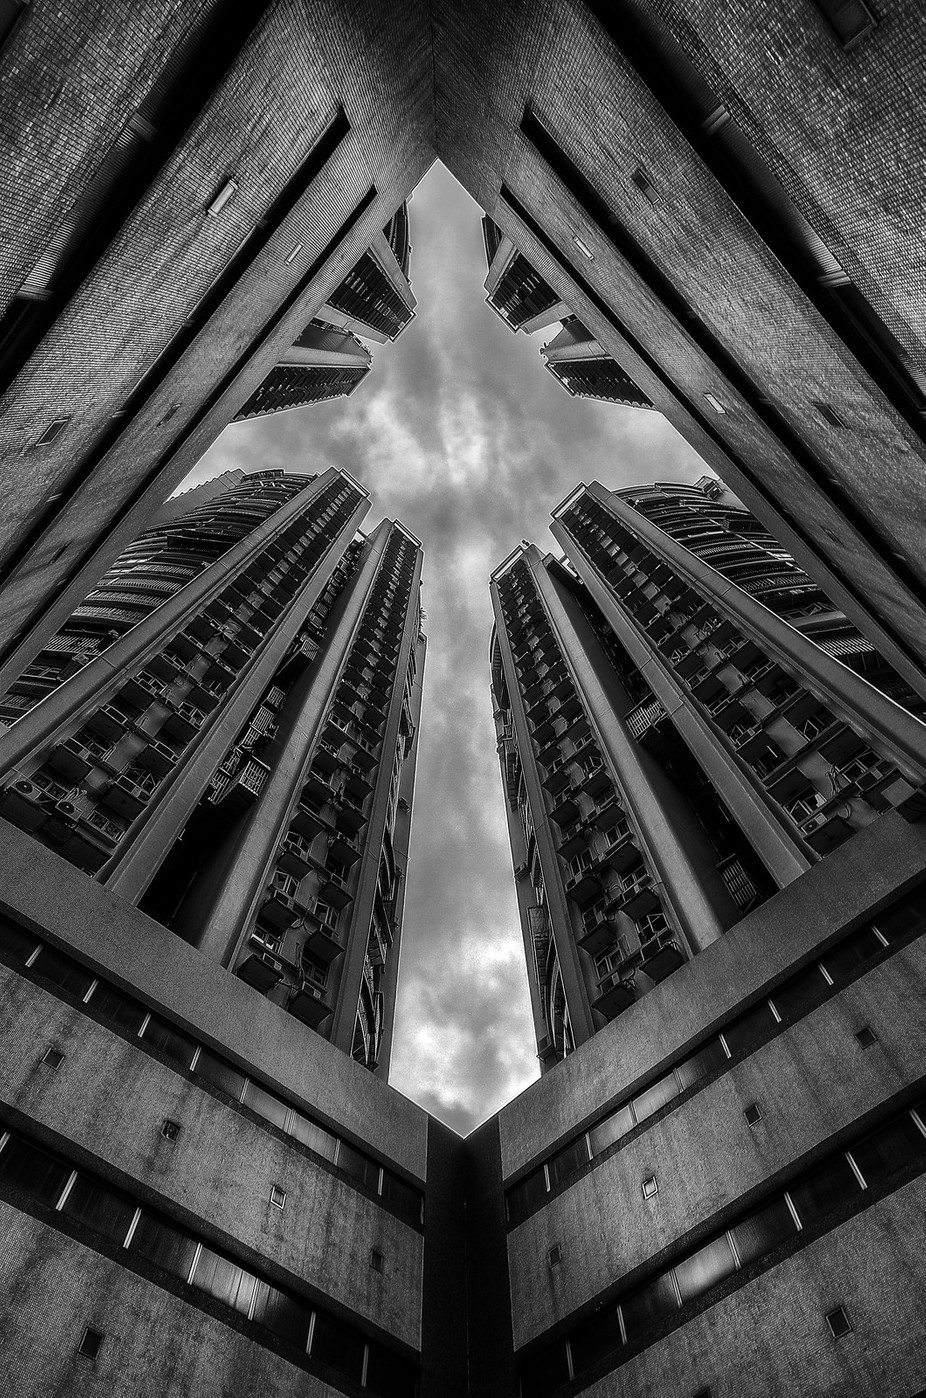 Flying Crucifix by ewill - Black And White Architecture Photo Contest